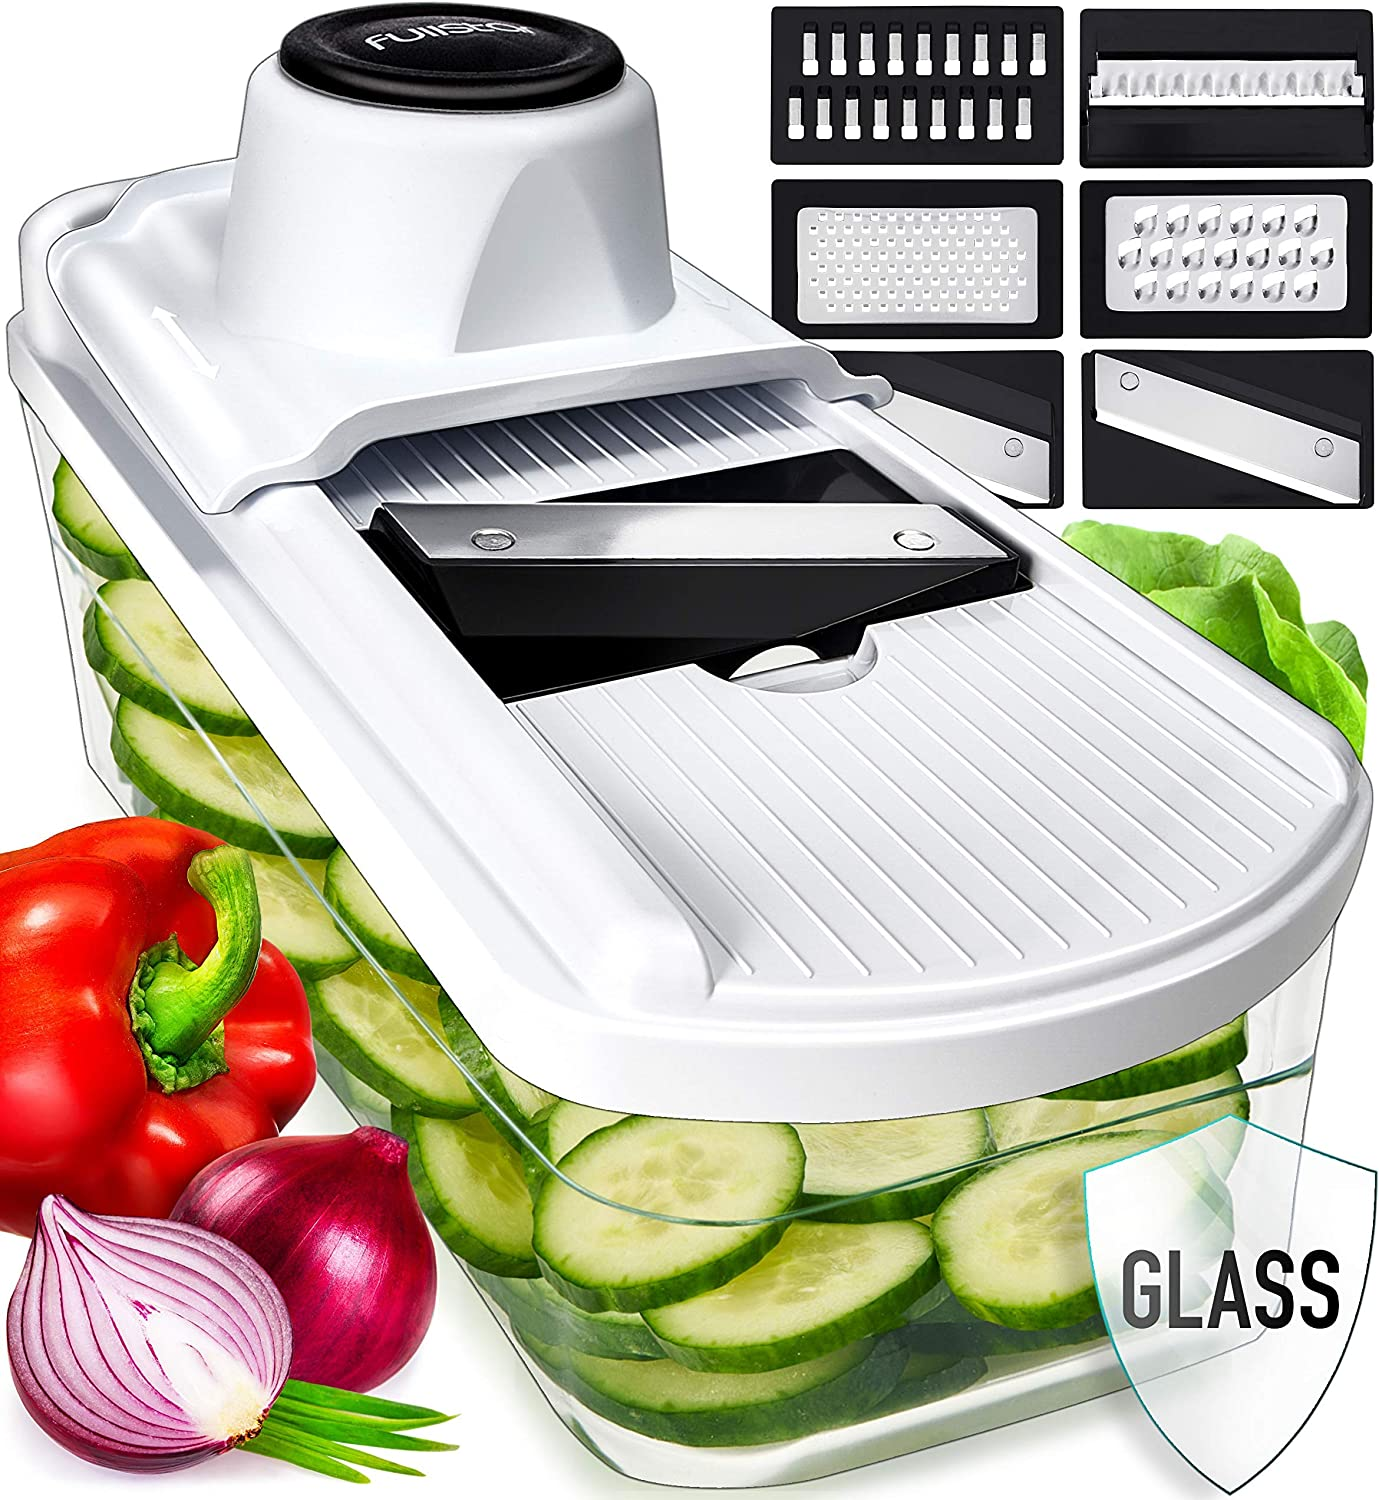 Mandoline Slicer Vegetable Slicer